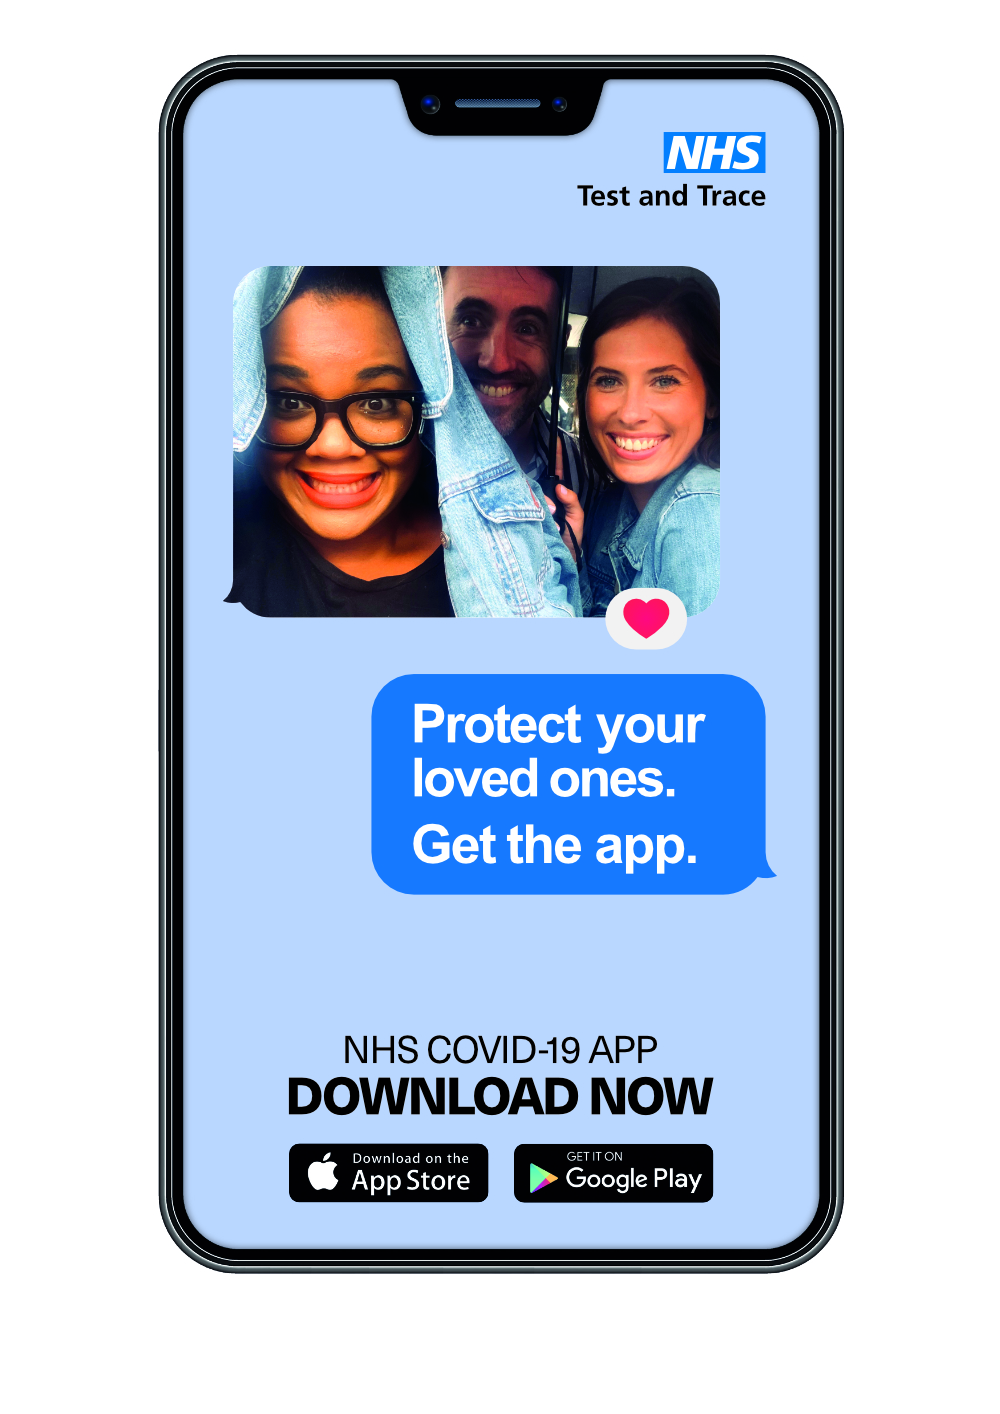 Download the NHS App 2